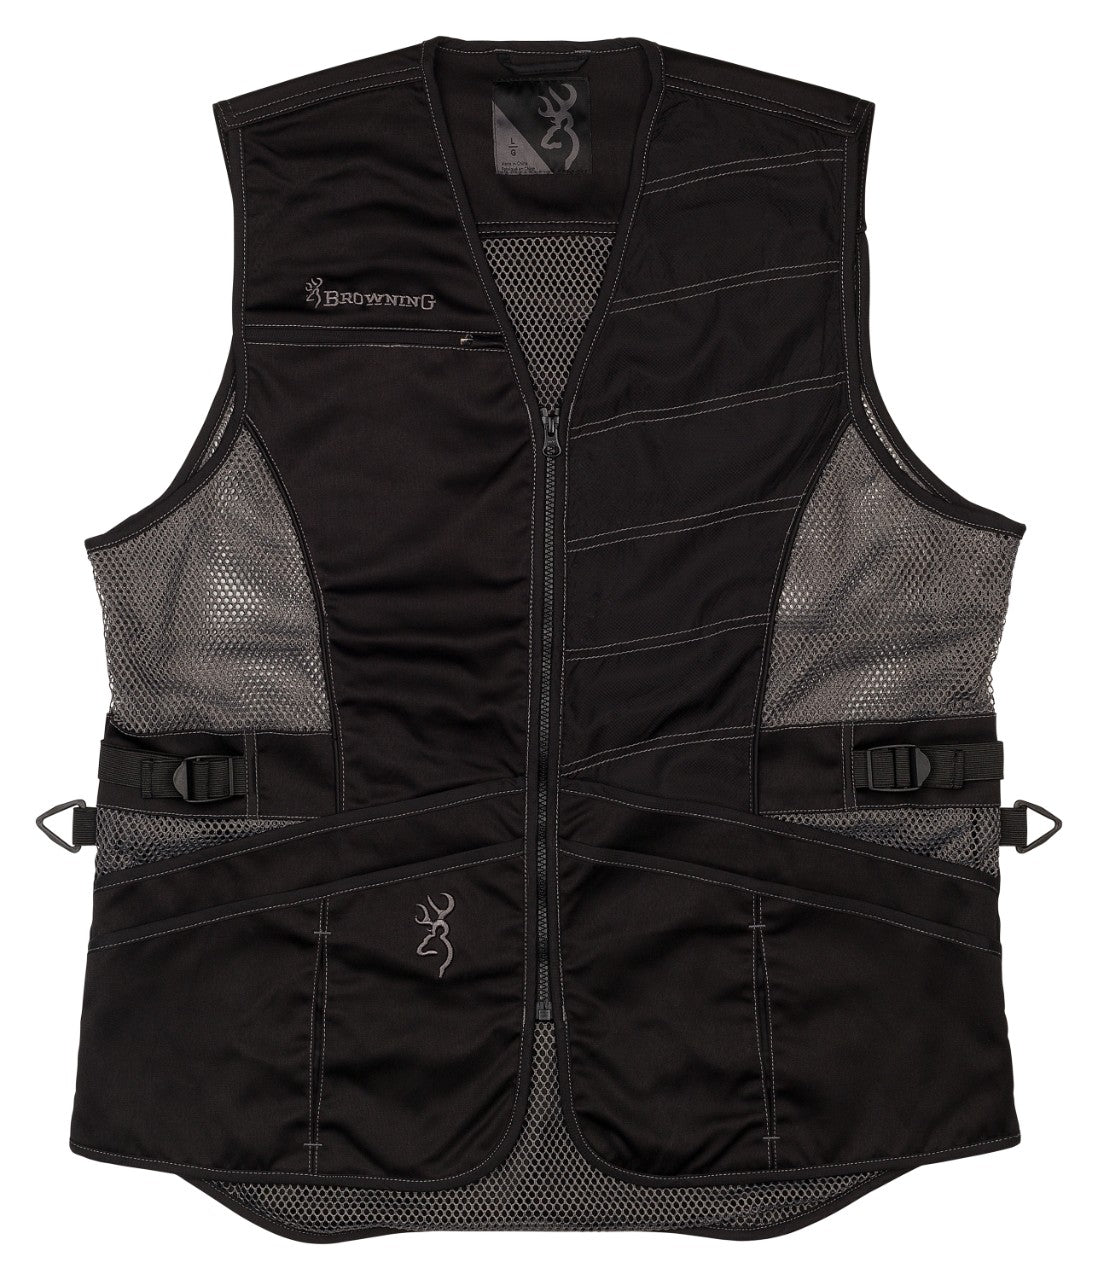 VST,ACE LH,BLACK/BLACK,3XL